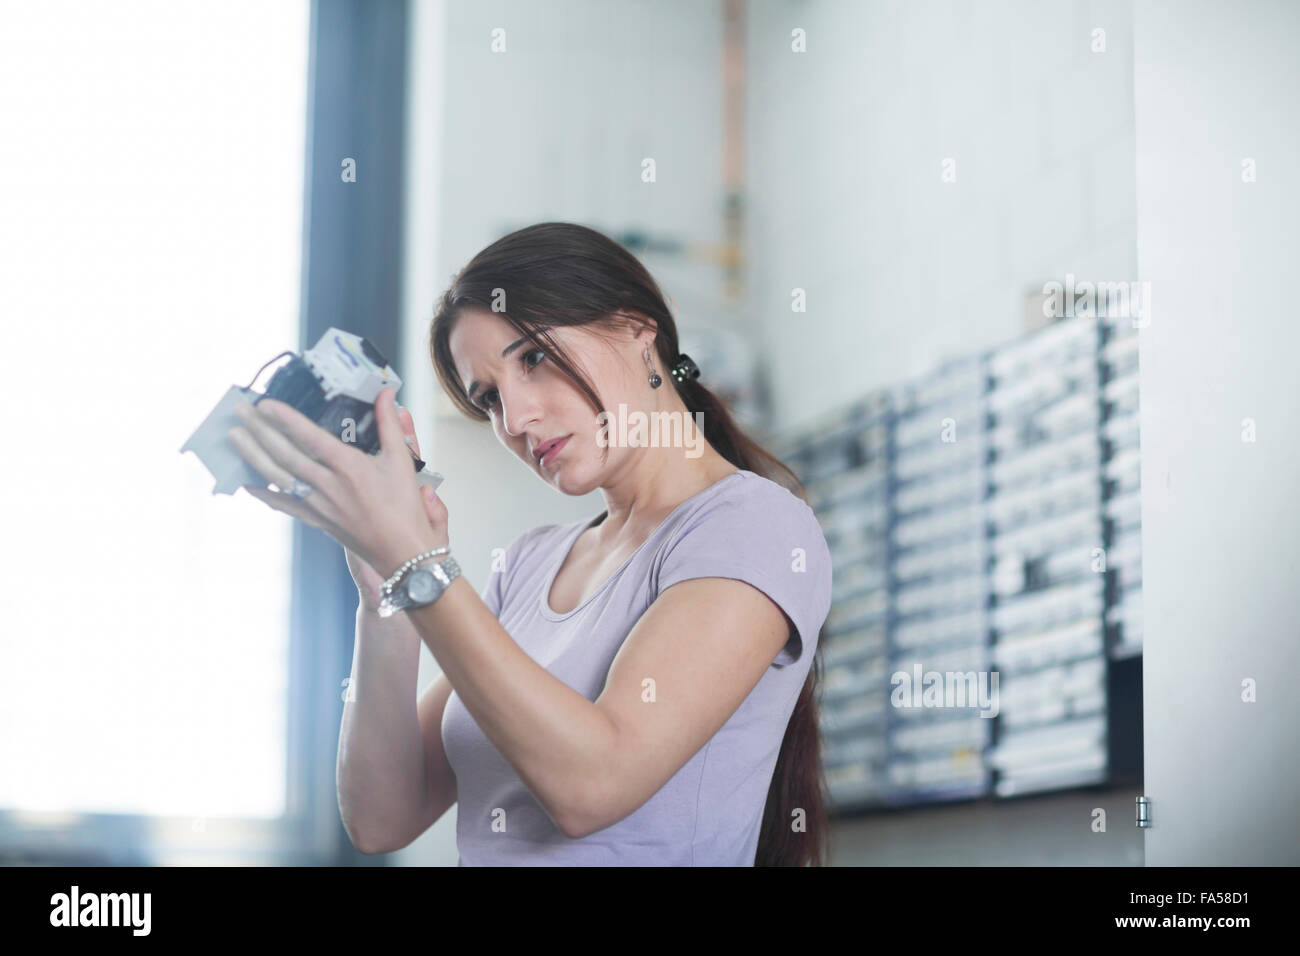 Female technician examining electrical component in an industrial plant, Freiburg Im Breisgau, Baden-Württemberg, - Stock Image